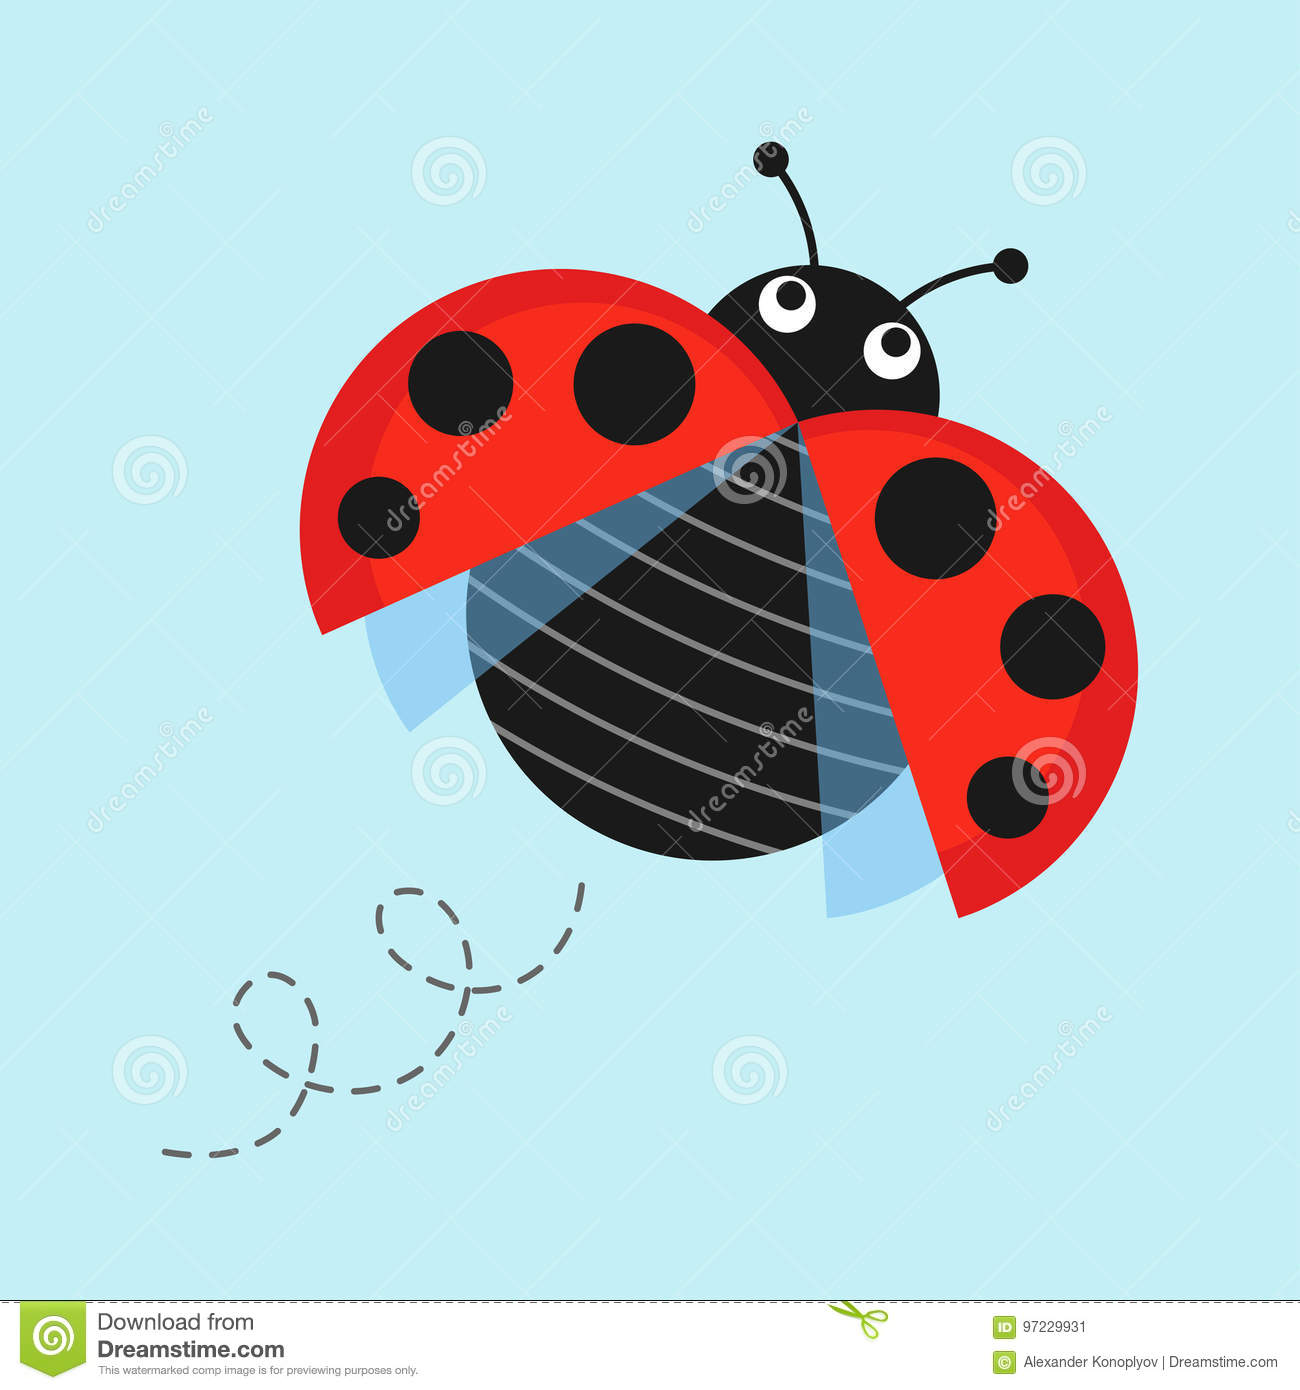 A Cartoon Ladybug cartoon flying ladybug stock vector. illustration of small